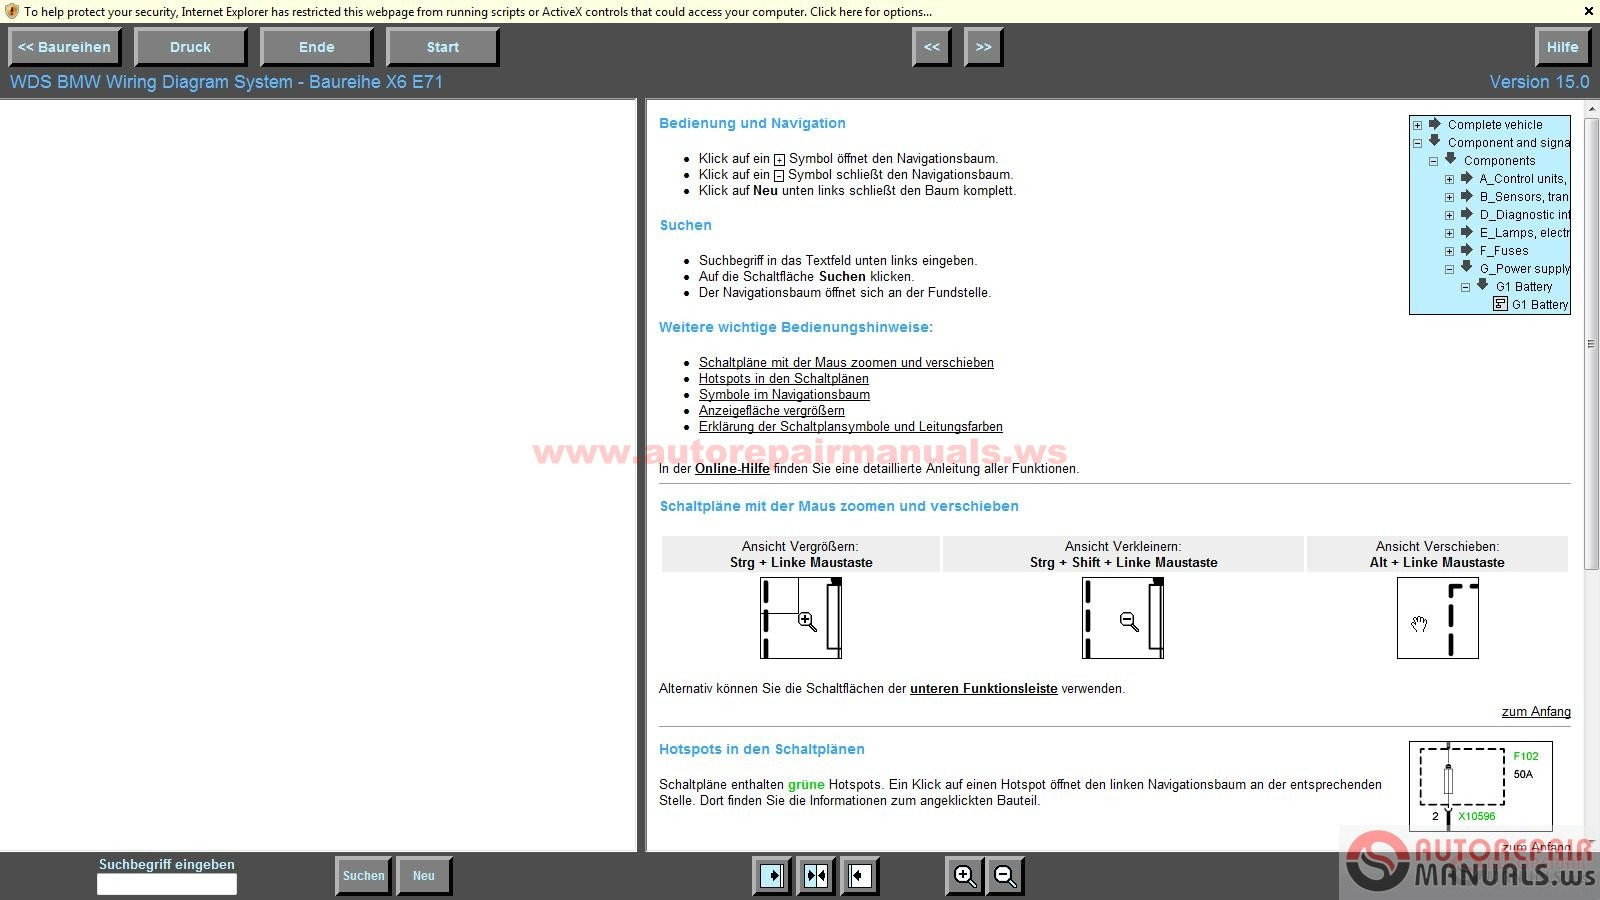 bmw wds v15 and mini wds v7 wiring diagram system free download now [ 1600 x 900 Pixel ]